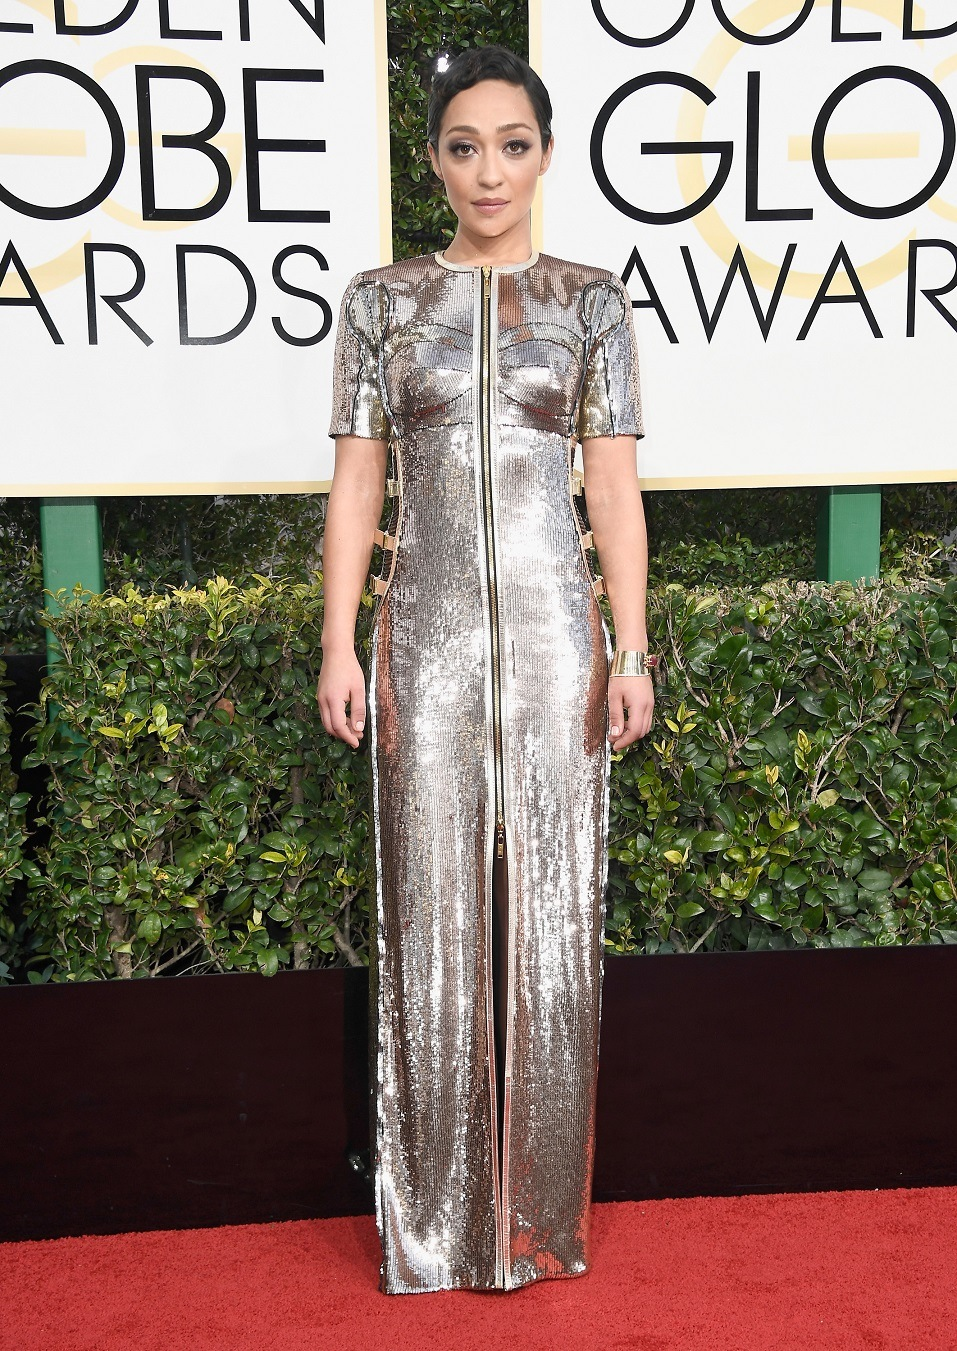 Actress Ruth Negga attends the 74th Annual Golden Globe Awards